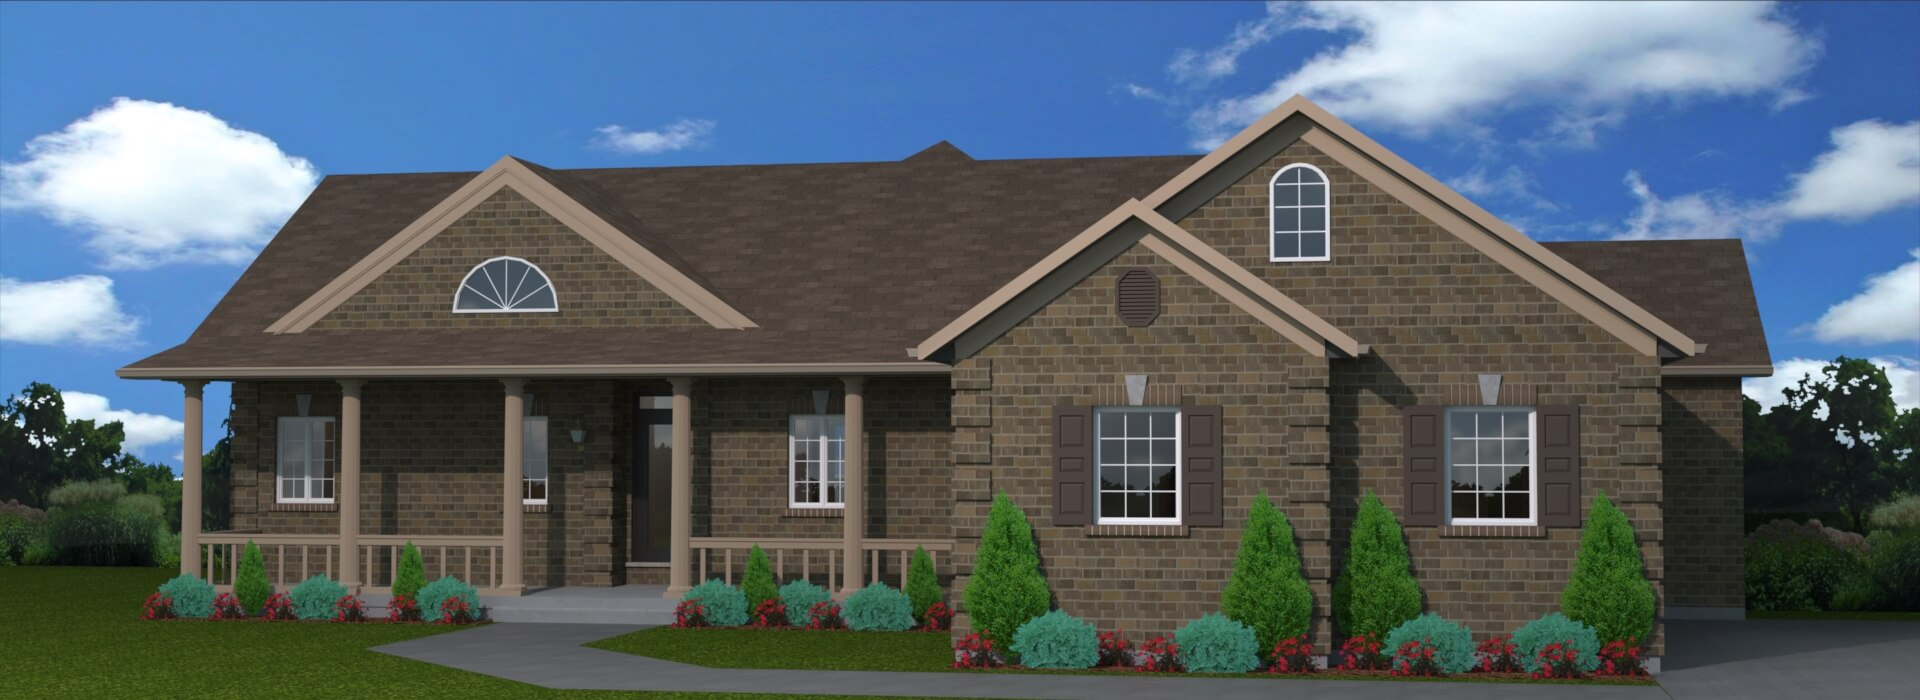 1918 sq.ft. timber mart house 3 bed 3 bath exterior render